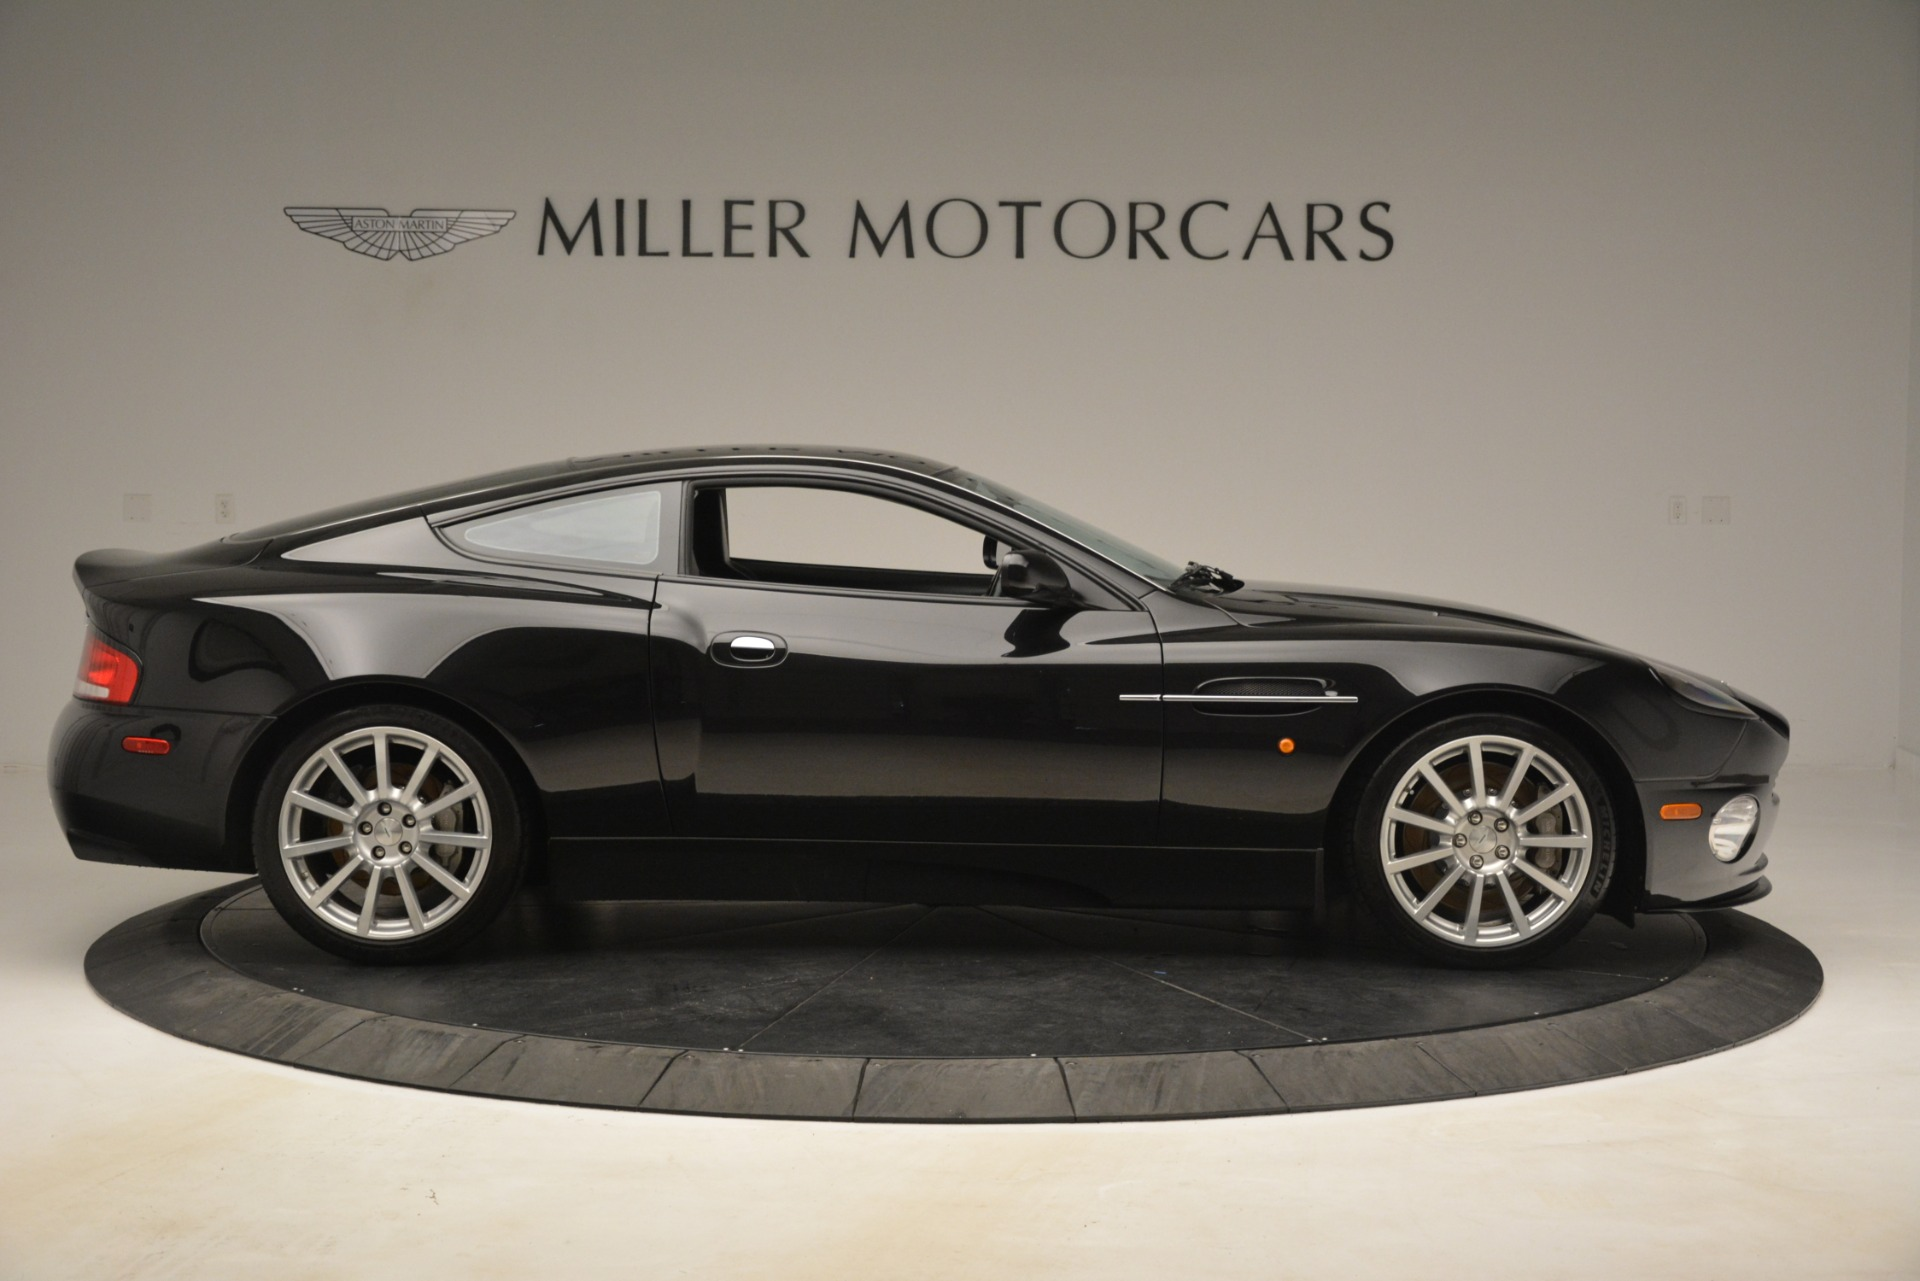 Used 2005 Aston Martin V12 Vanquish S For Sale In Westport, CT 3218_p9